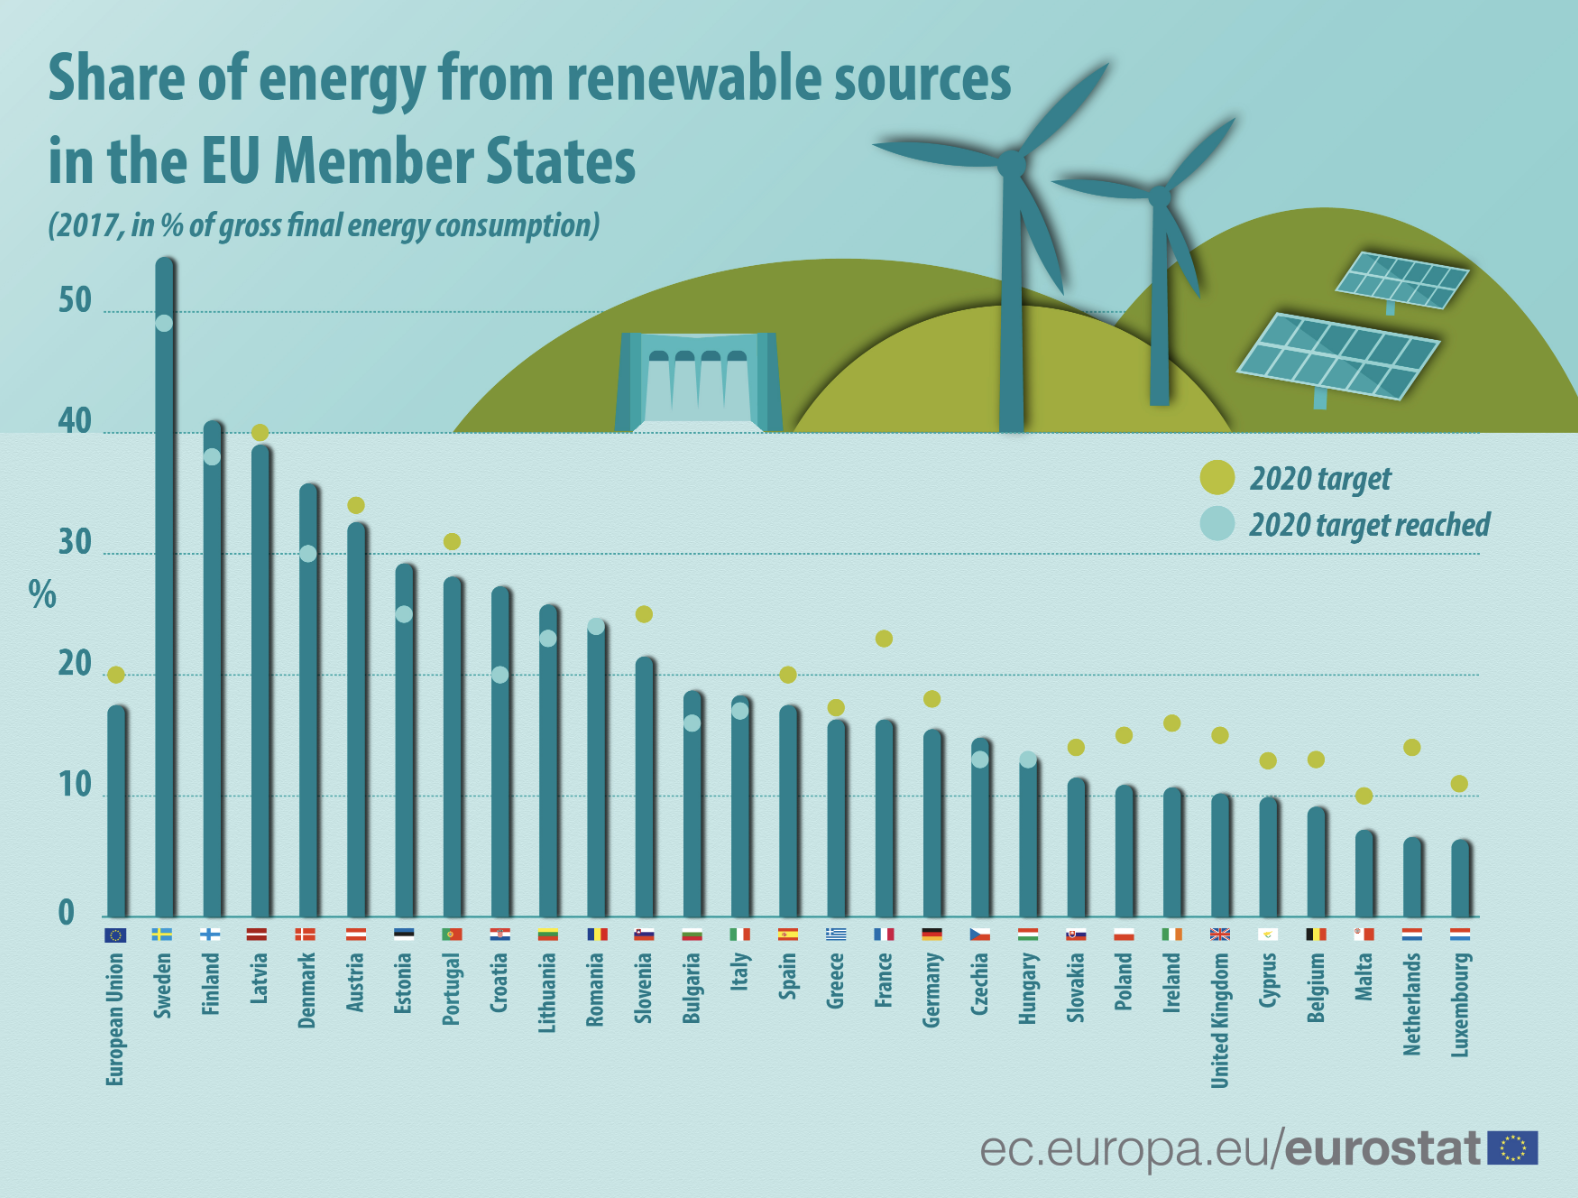 Meeting renewables targets will have economic benefits for countries